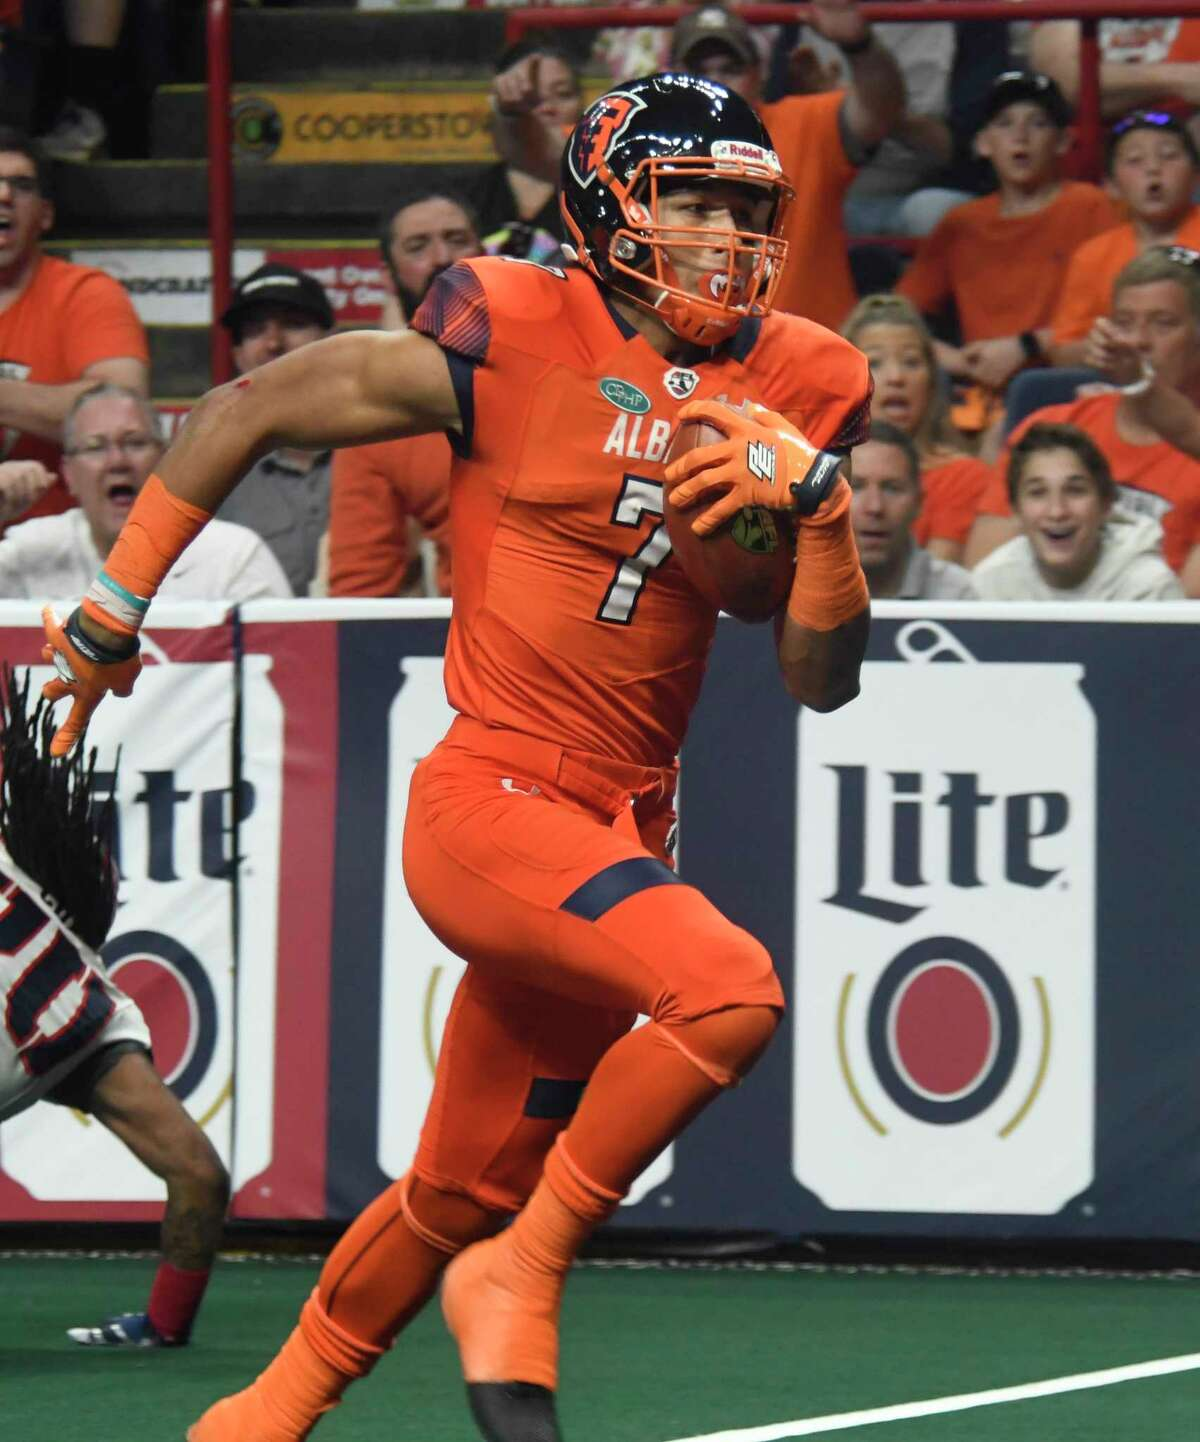 In two seasons with the AFL Empire, Malachi Jones had 173 receptions for 2,596 yards and 54 touchdowns.